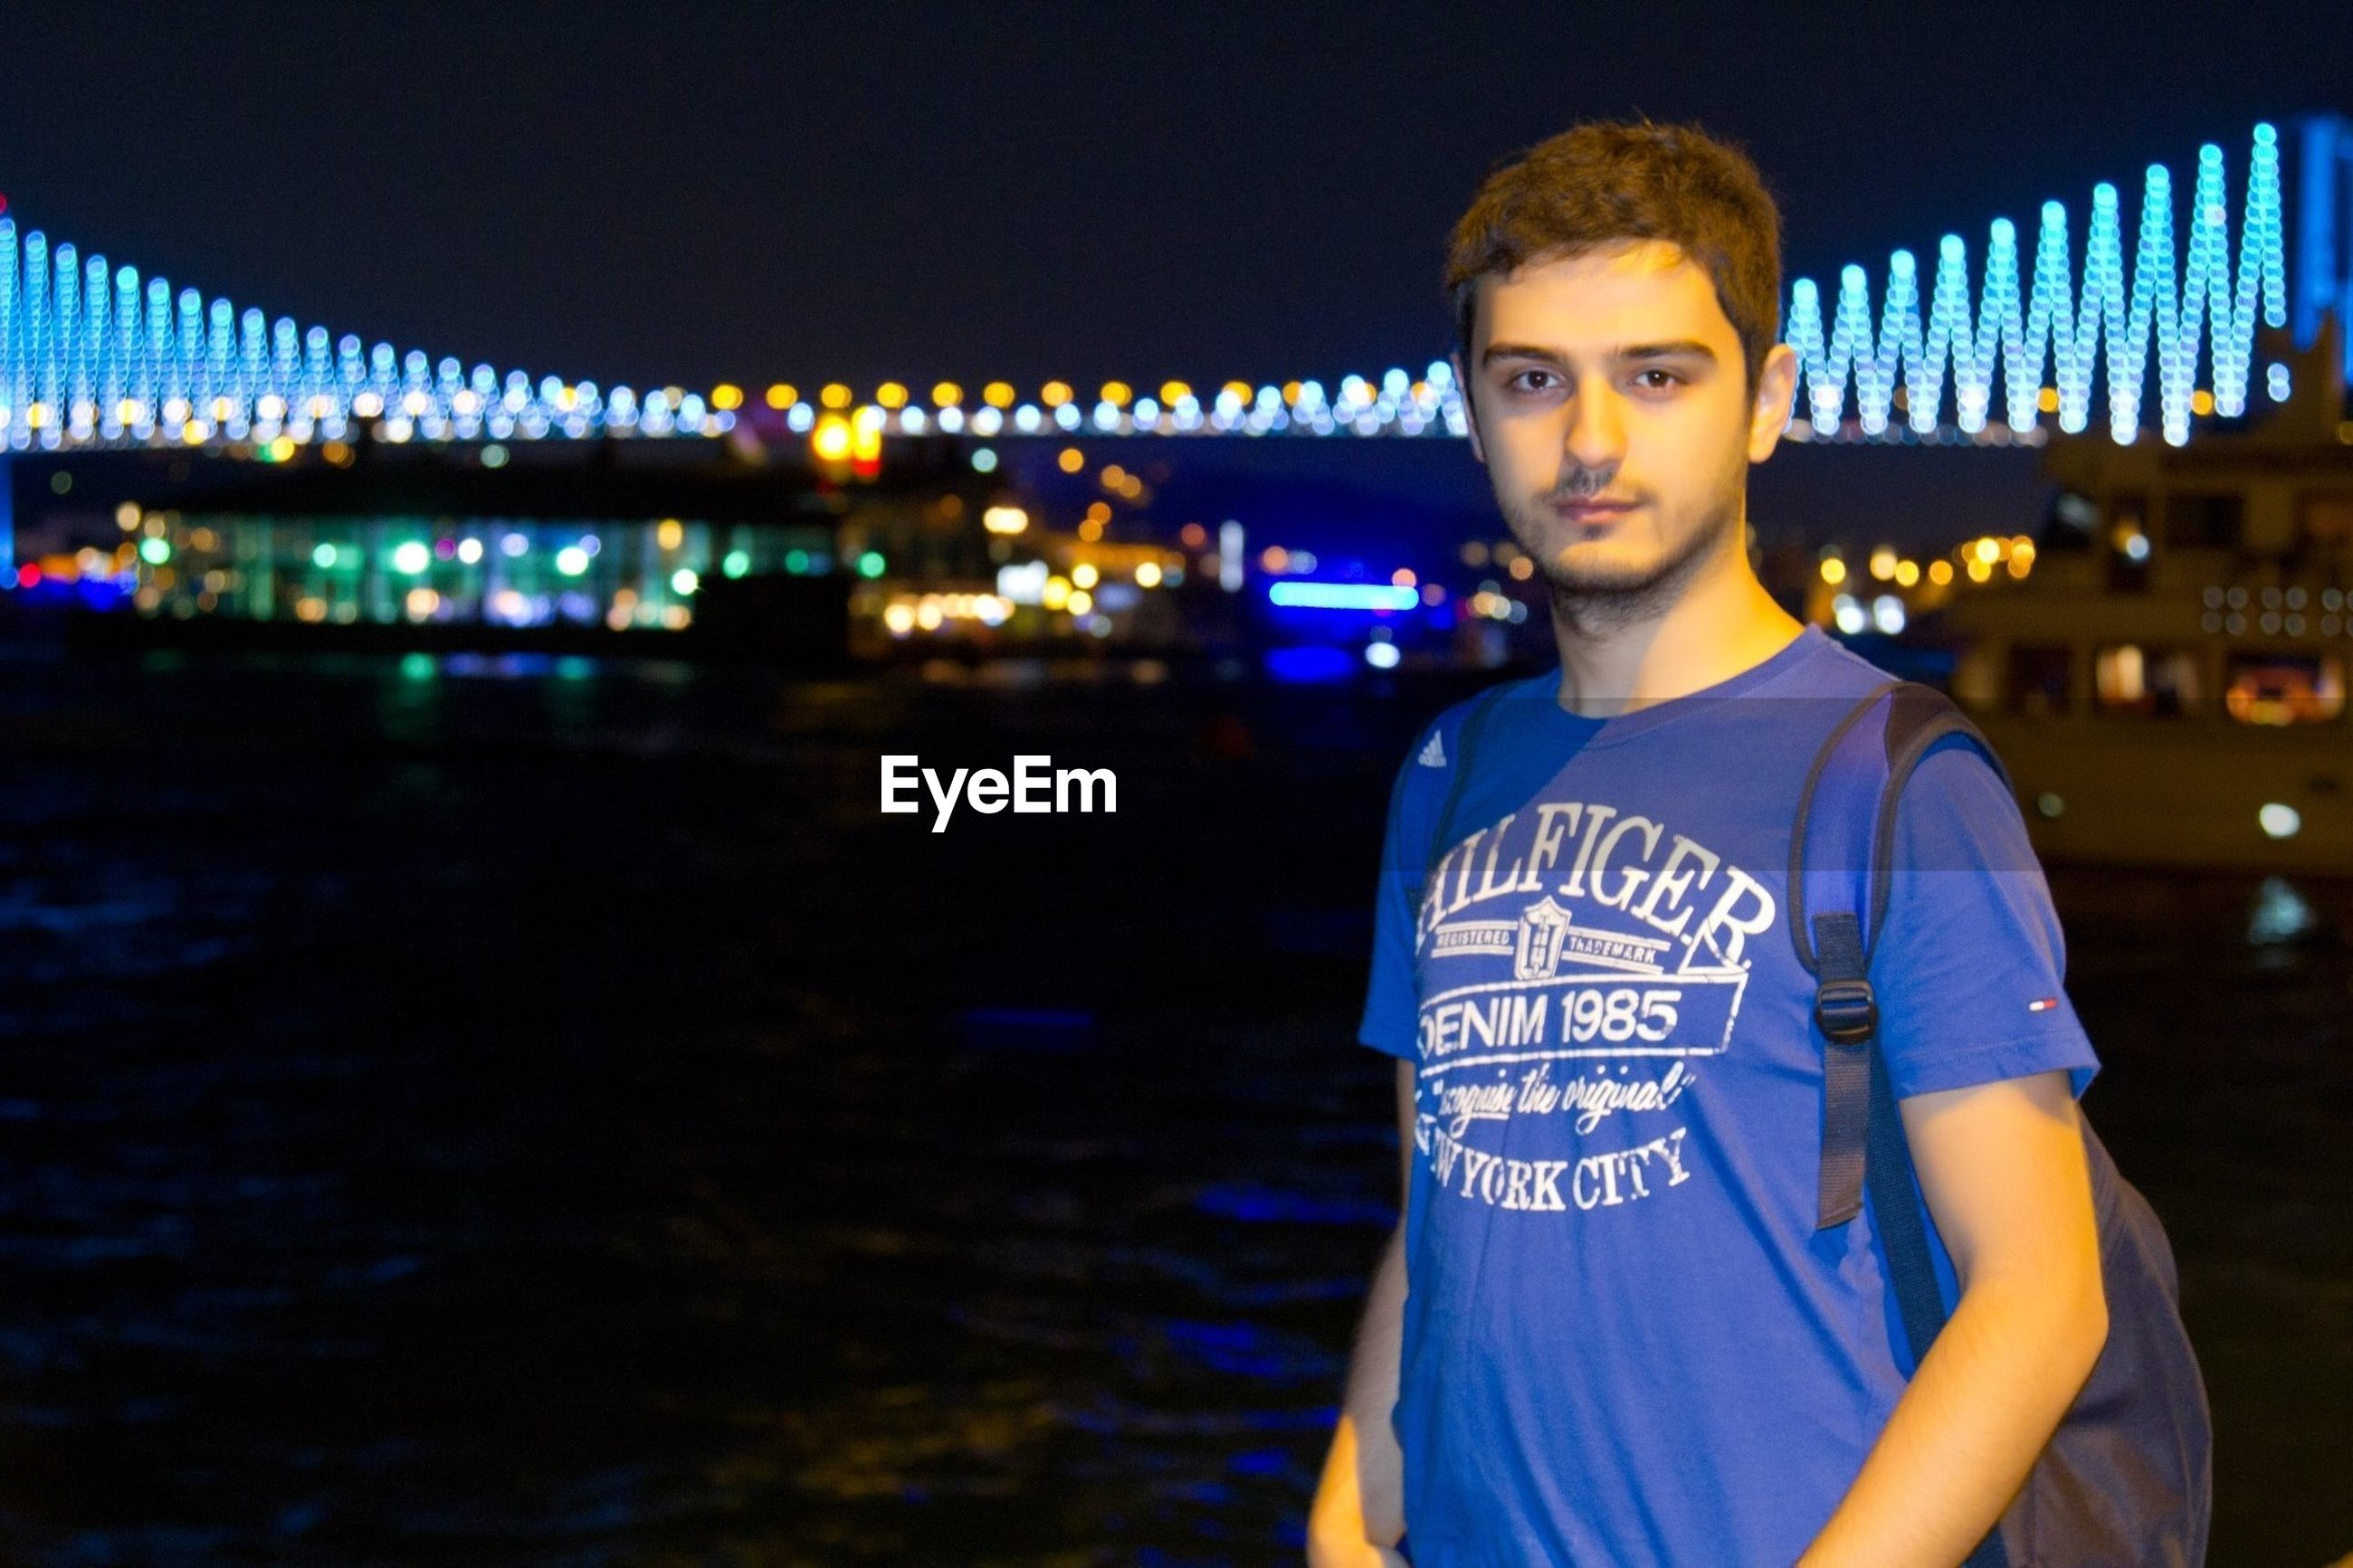 illuminated, night, lifestyles, looking at camera, portrait, casual clothing, leisure activity, person, architecture, front view, built structure, standing, building exterior, waist up, three quarter length, city, smiling, blue